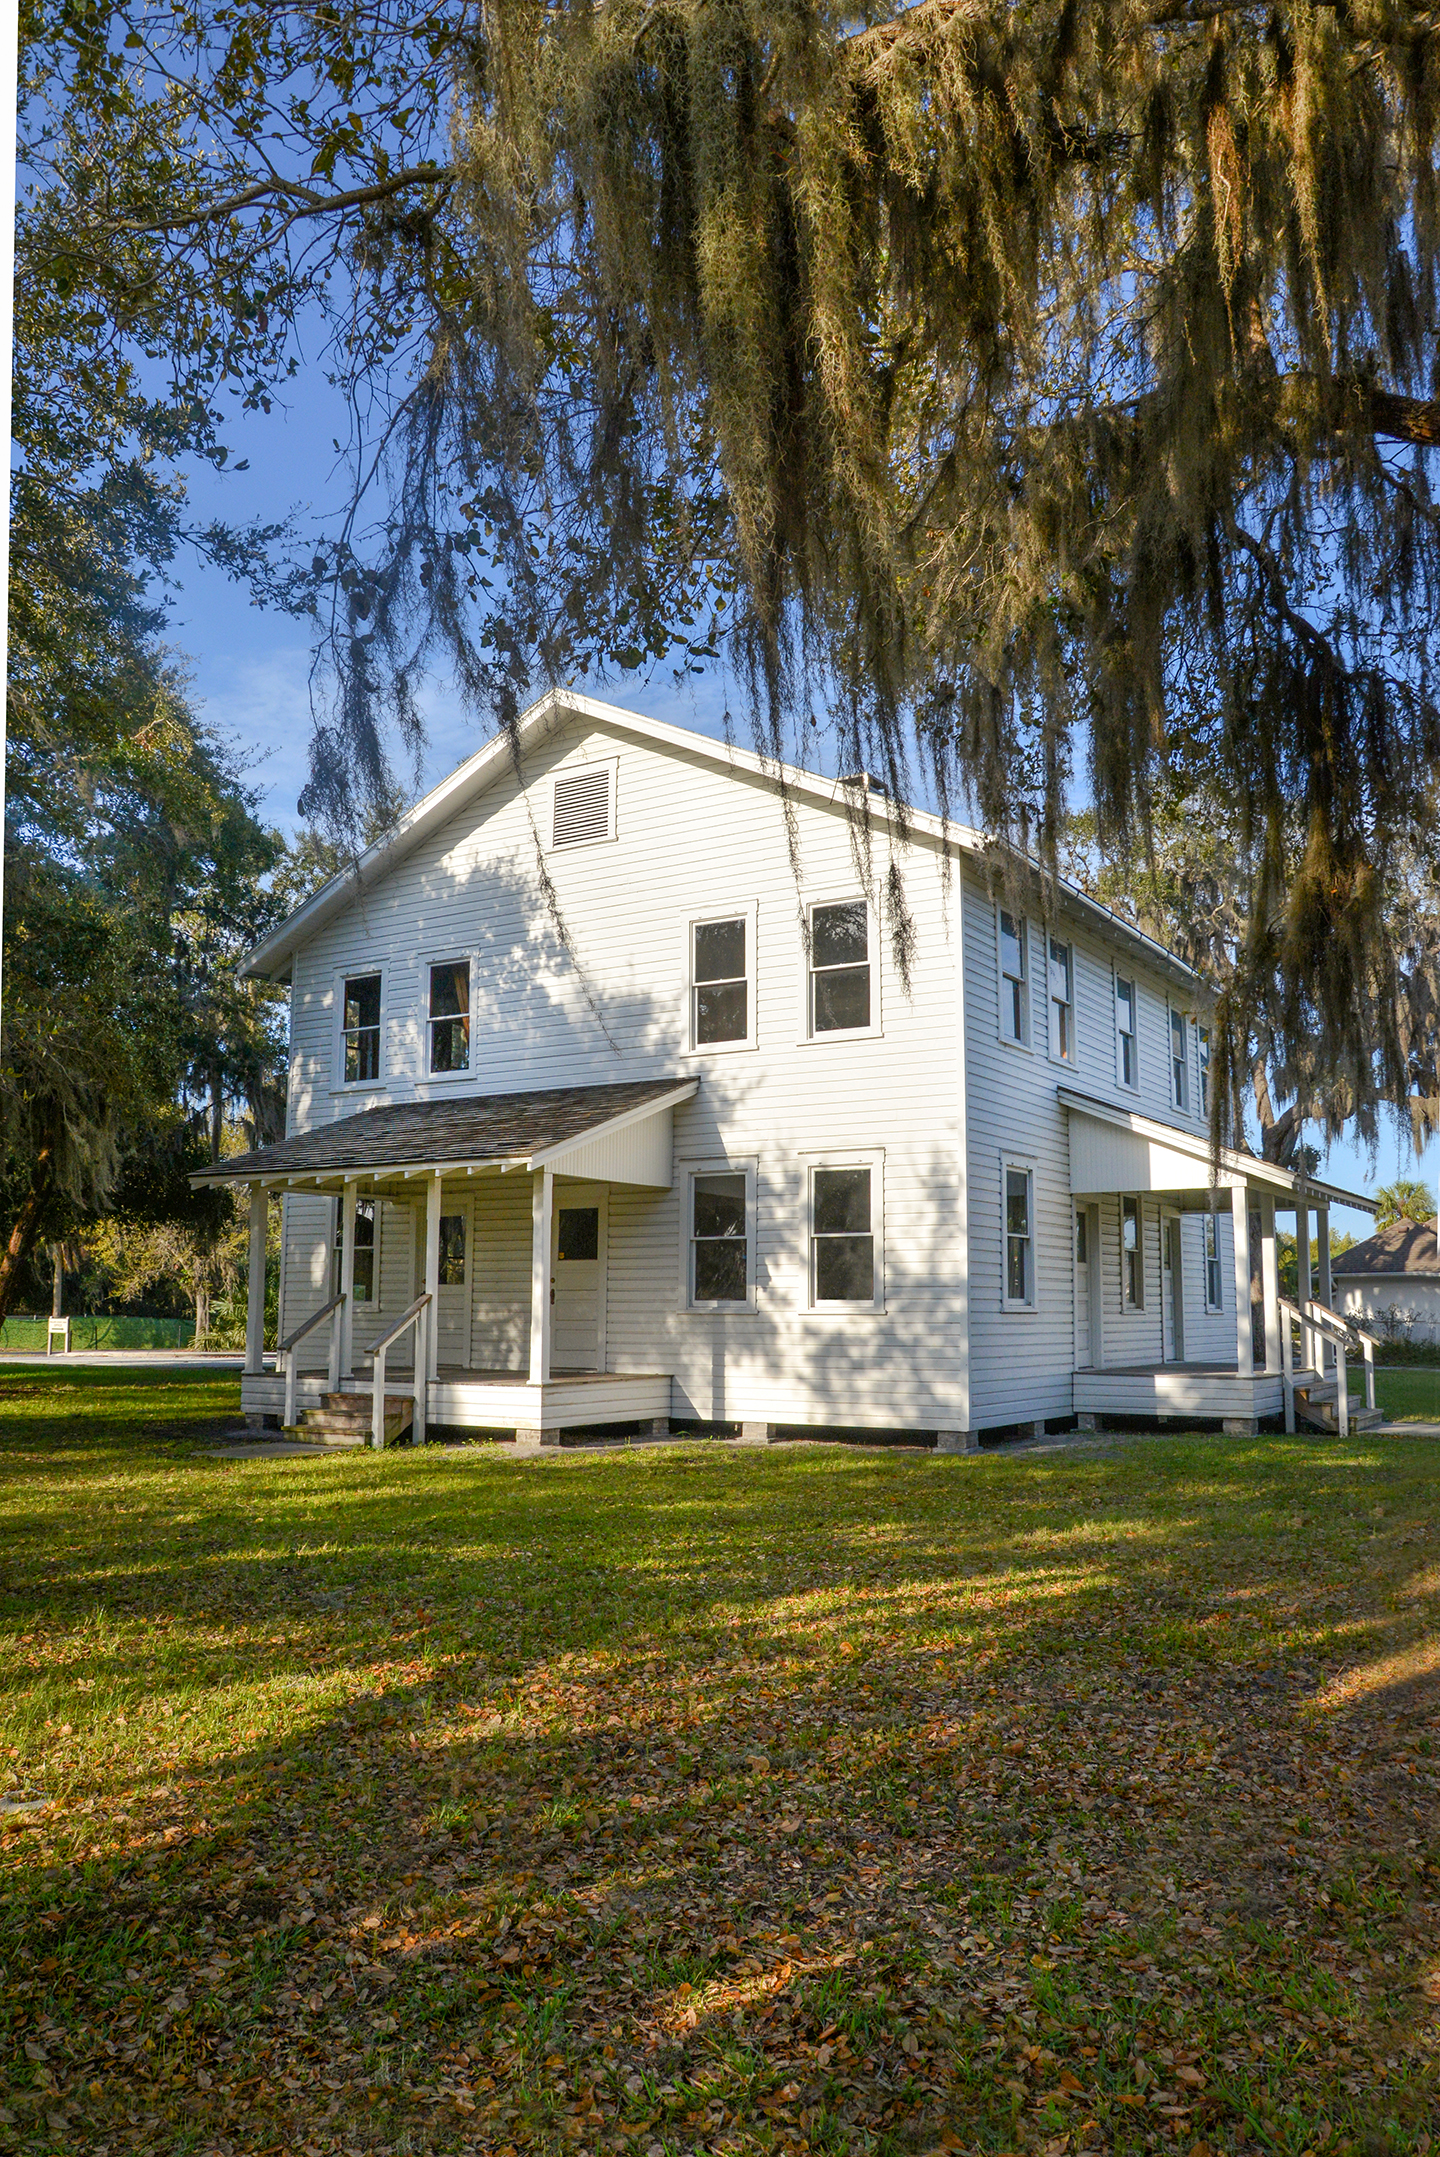 Historic Farmhouse at the Phillippi Estate Park